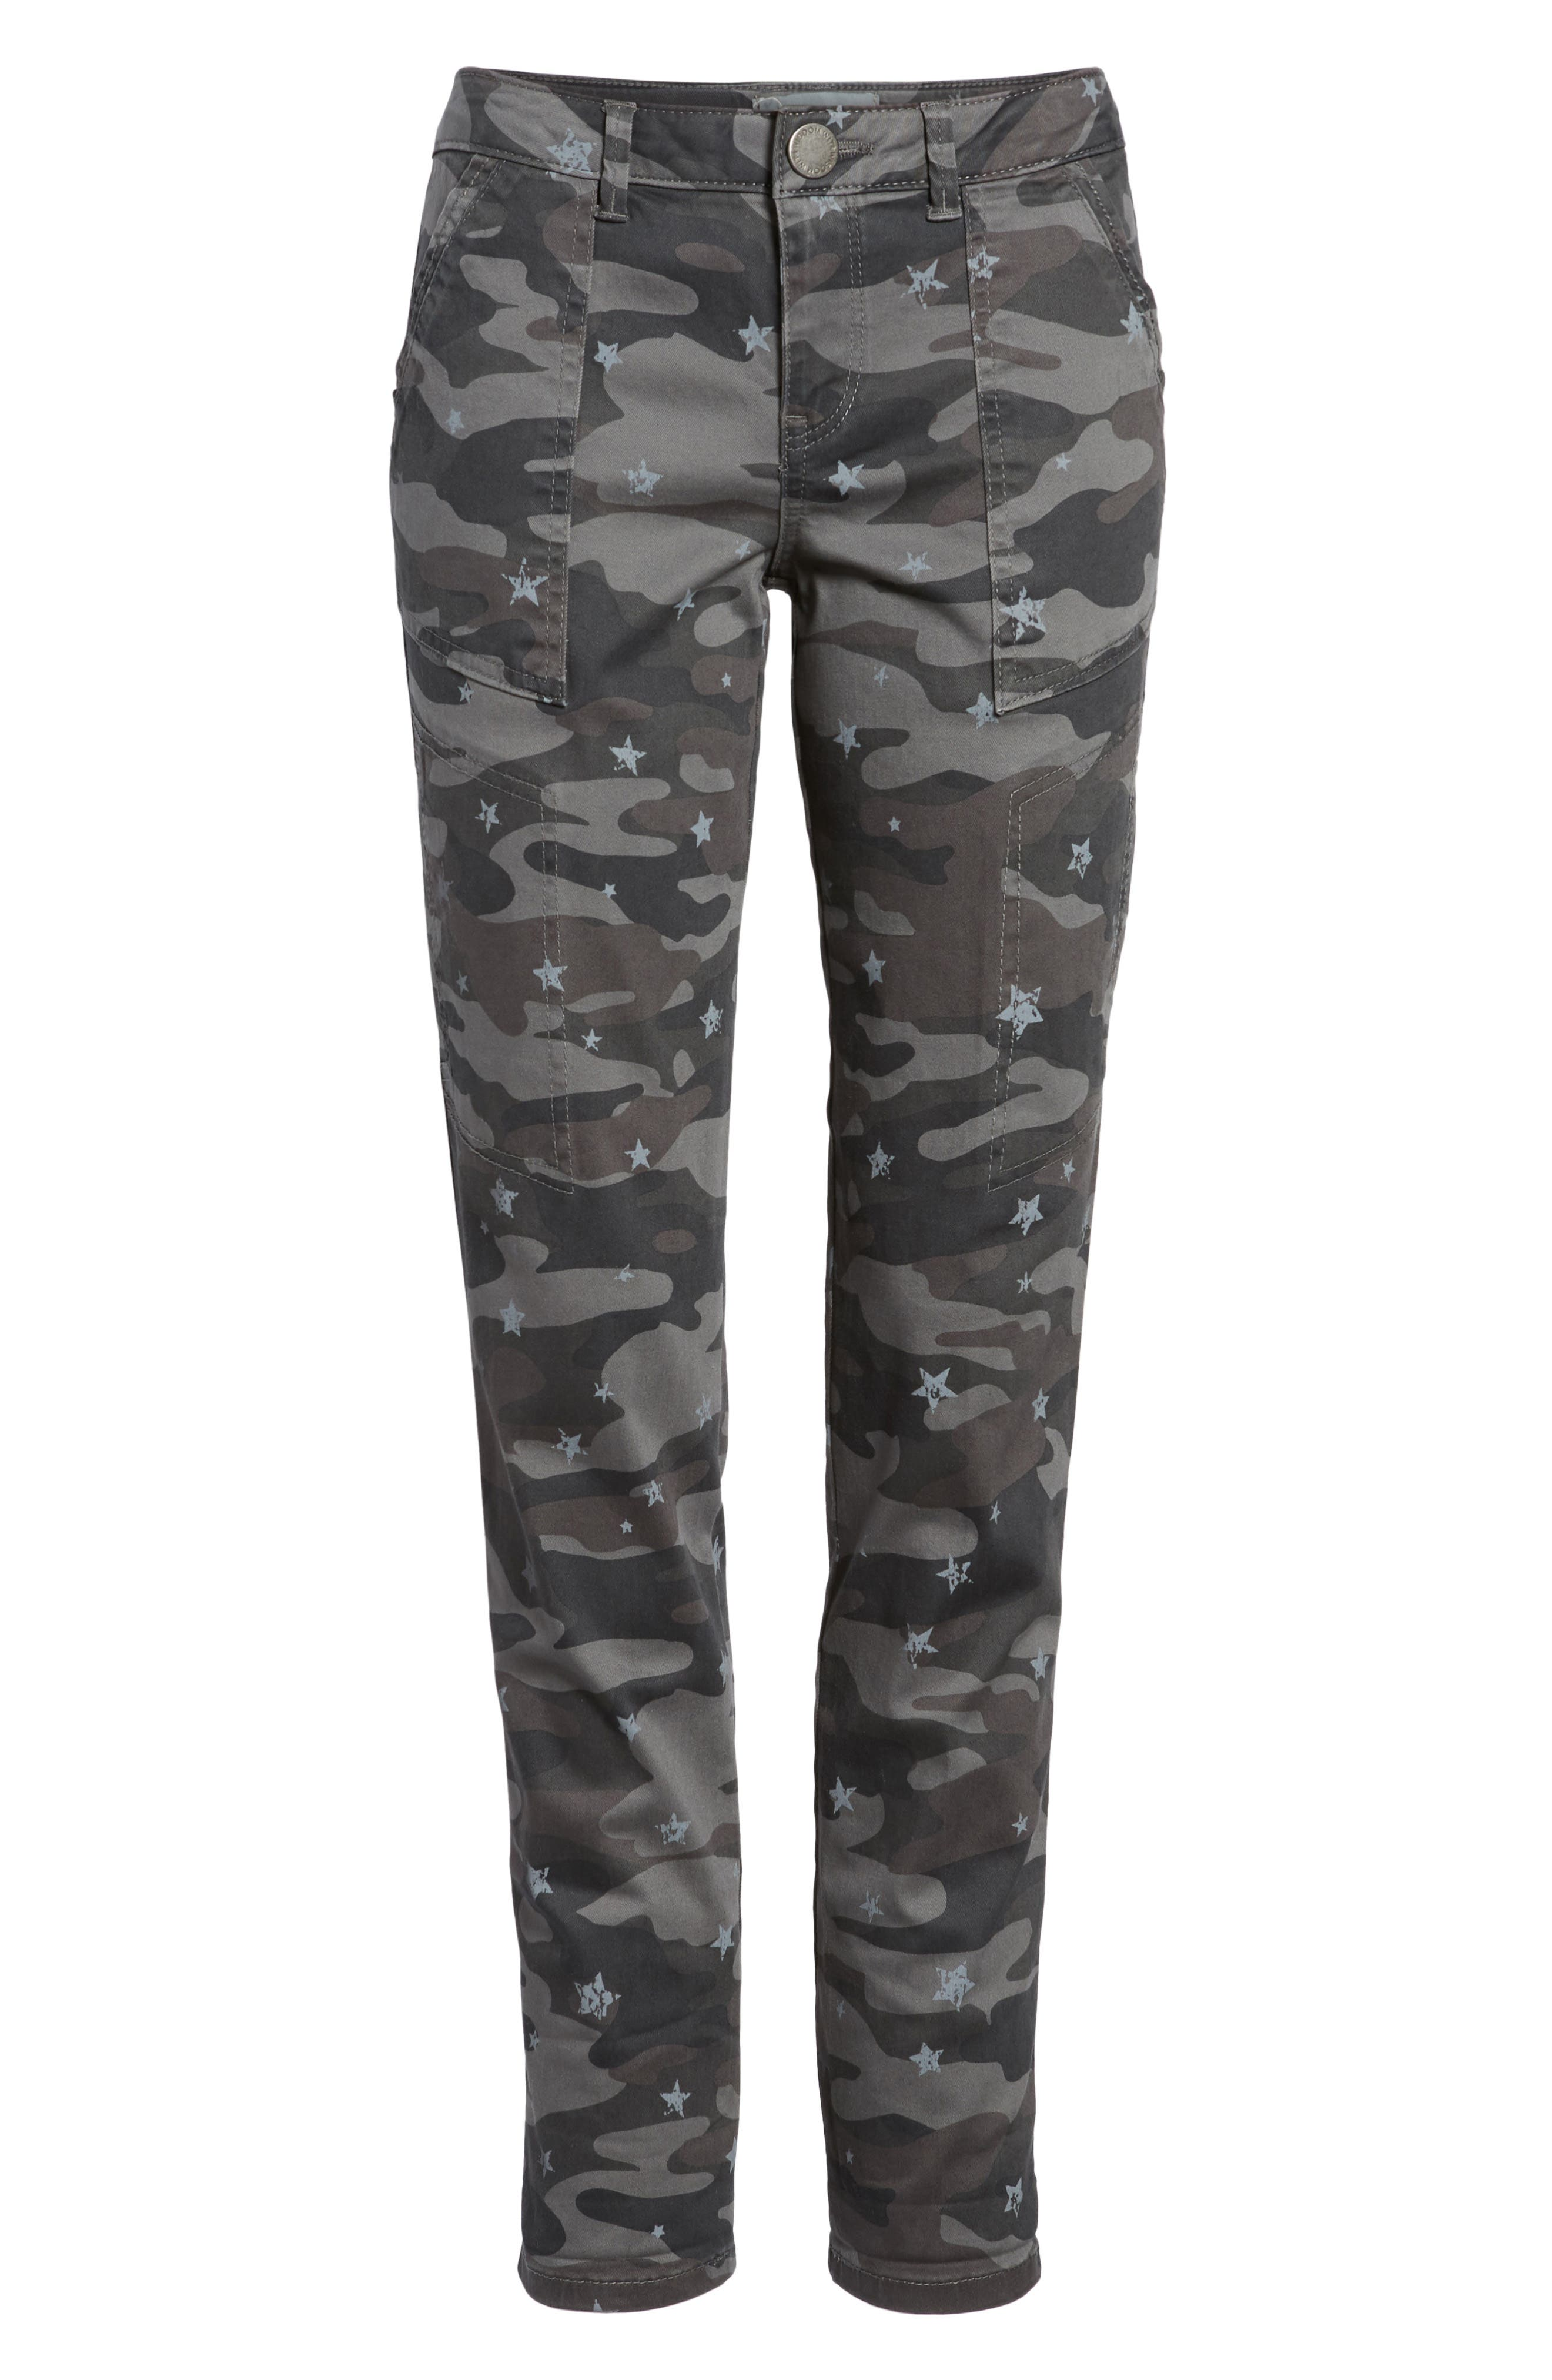 Twill Star Camo Cargo Pants,                             Alternate thumbnail 7, color,                             Cc- Charcoal